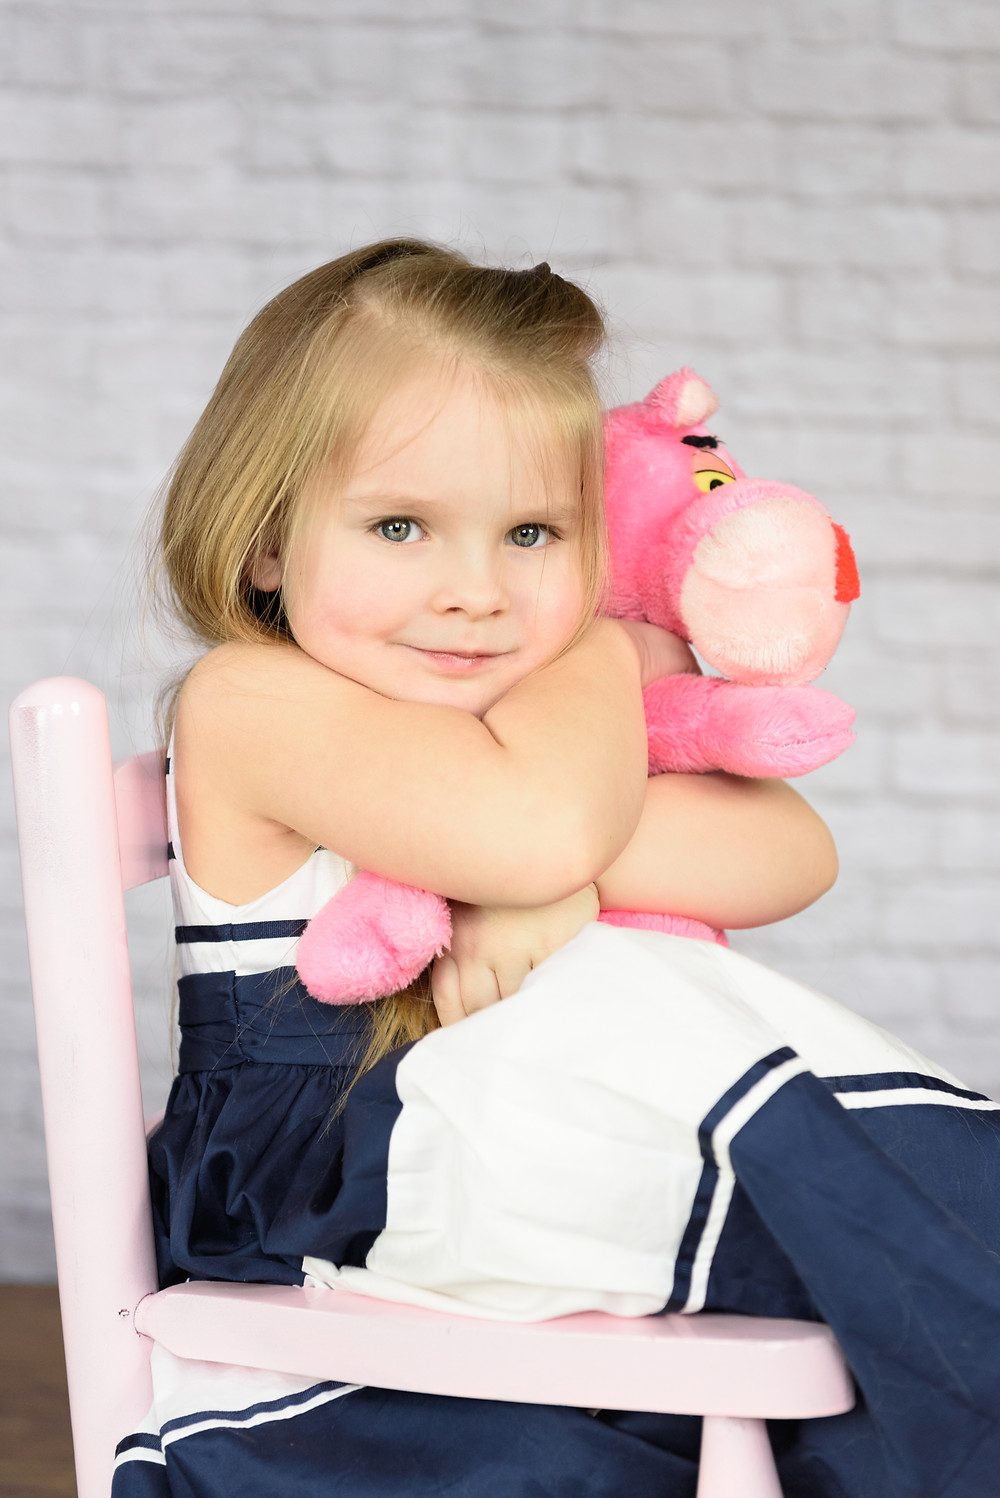 Girl sitting in a pink chair hugging her pink panther stuffed animal. There is a white brick backdrop behind her.